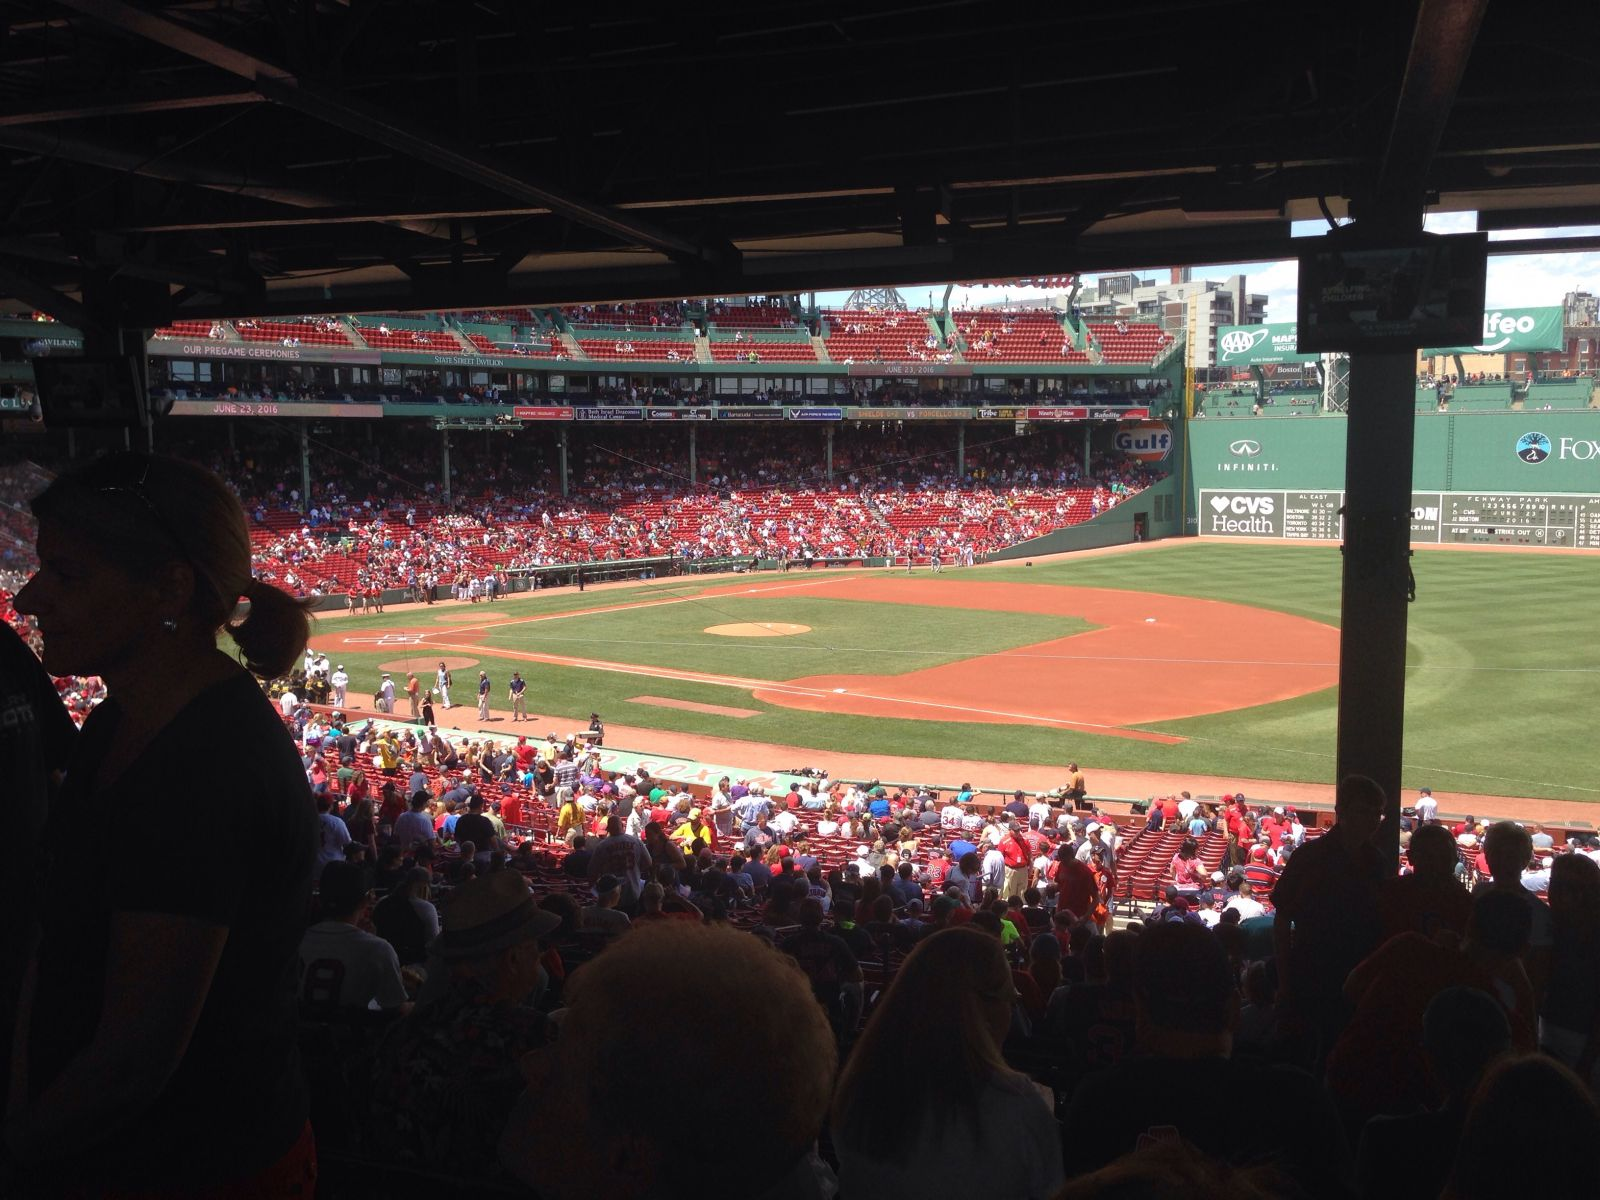 Seat View for Fenway Park Grandstand 12, Row 15, Seat 15